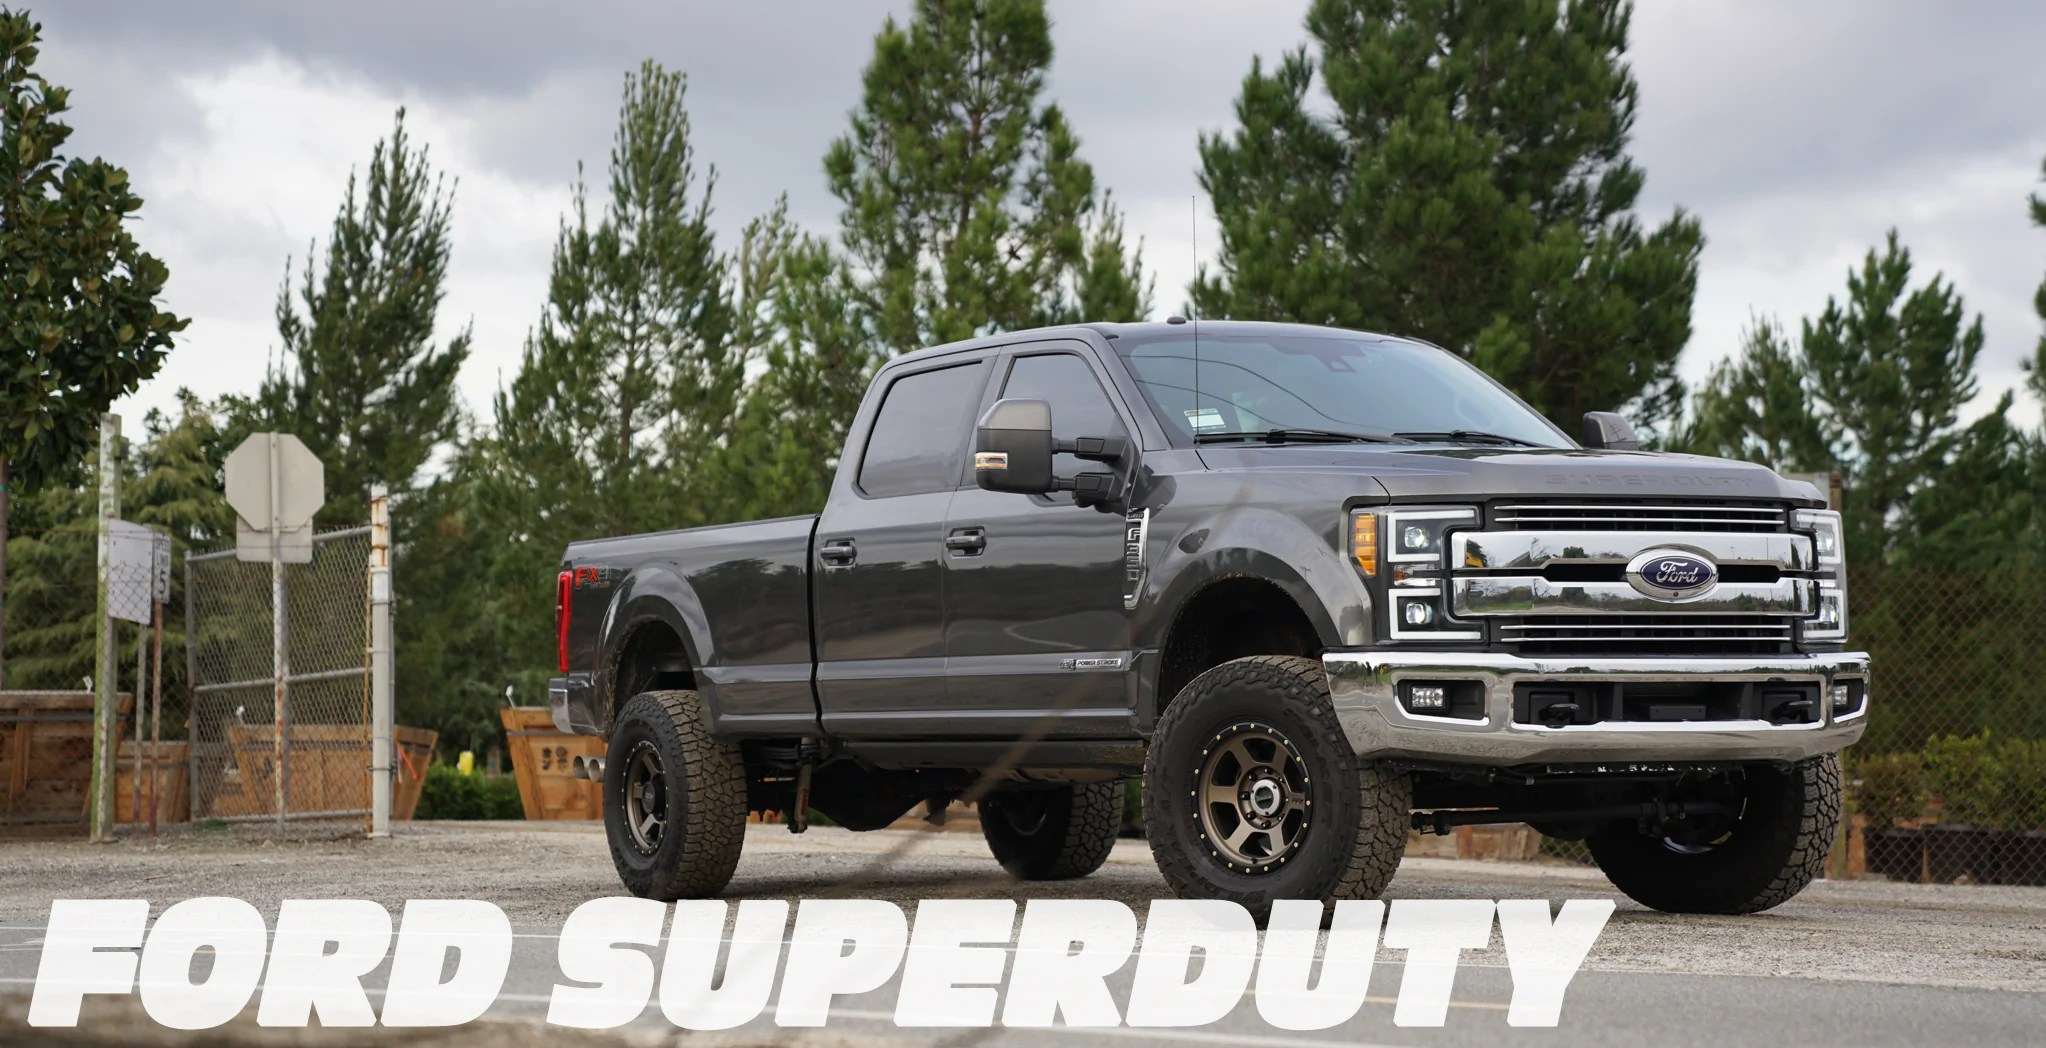 medium resolution of all the parts and upgrades you ll need for your ford f250 f350 superduty including 17 and 20 inch wheels in a 8x170 bolt pattern with a heavy duty load